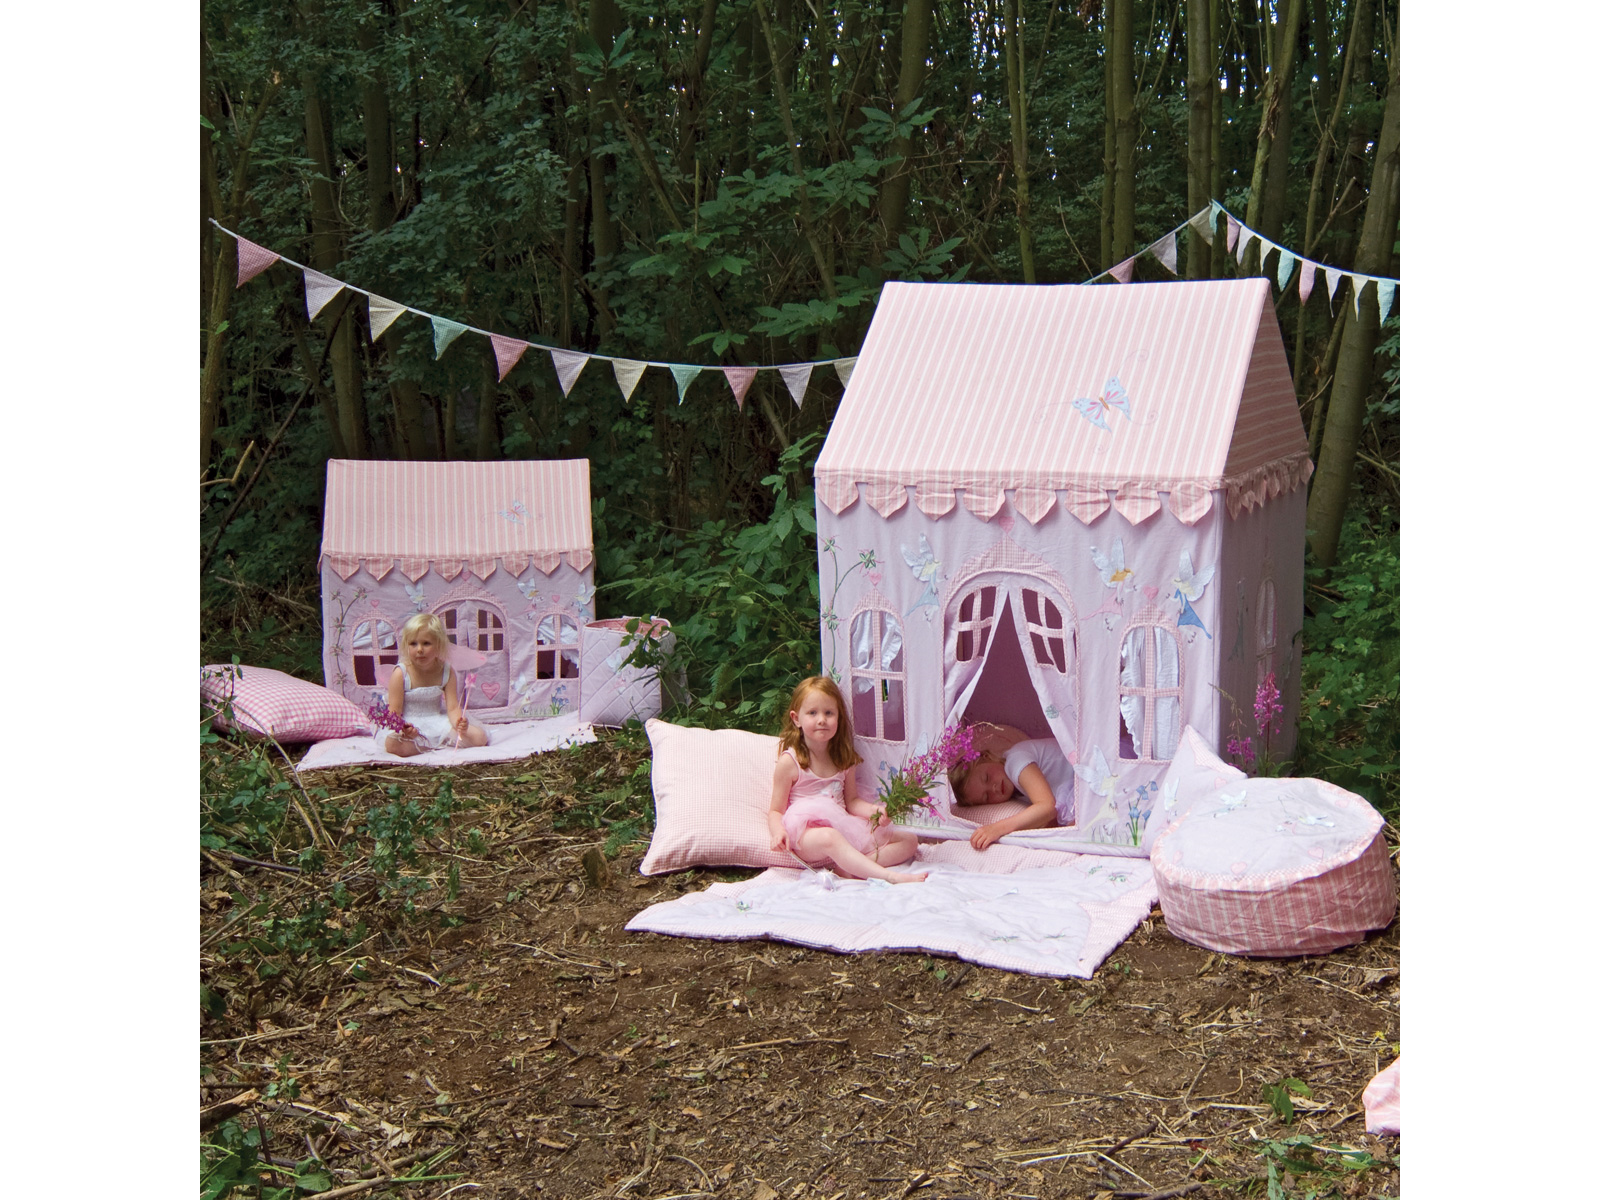 Win Green Handmade Cotton Fairy Cottage Playhouse - Playhouse of Dreams  - 11